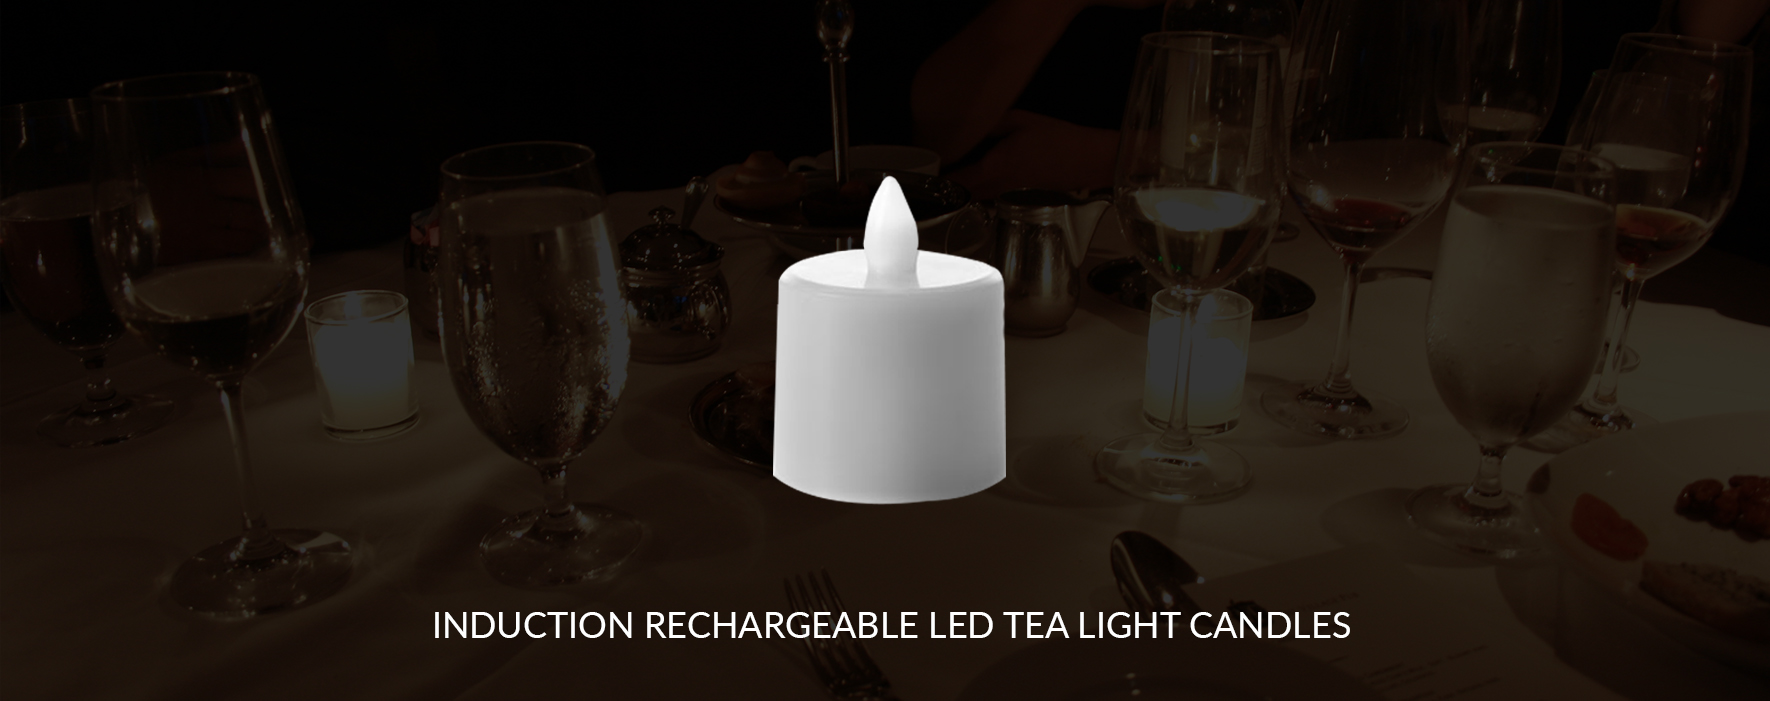 Induction Rechargeable LED Tea Light Candles